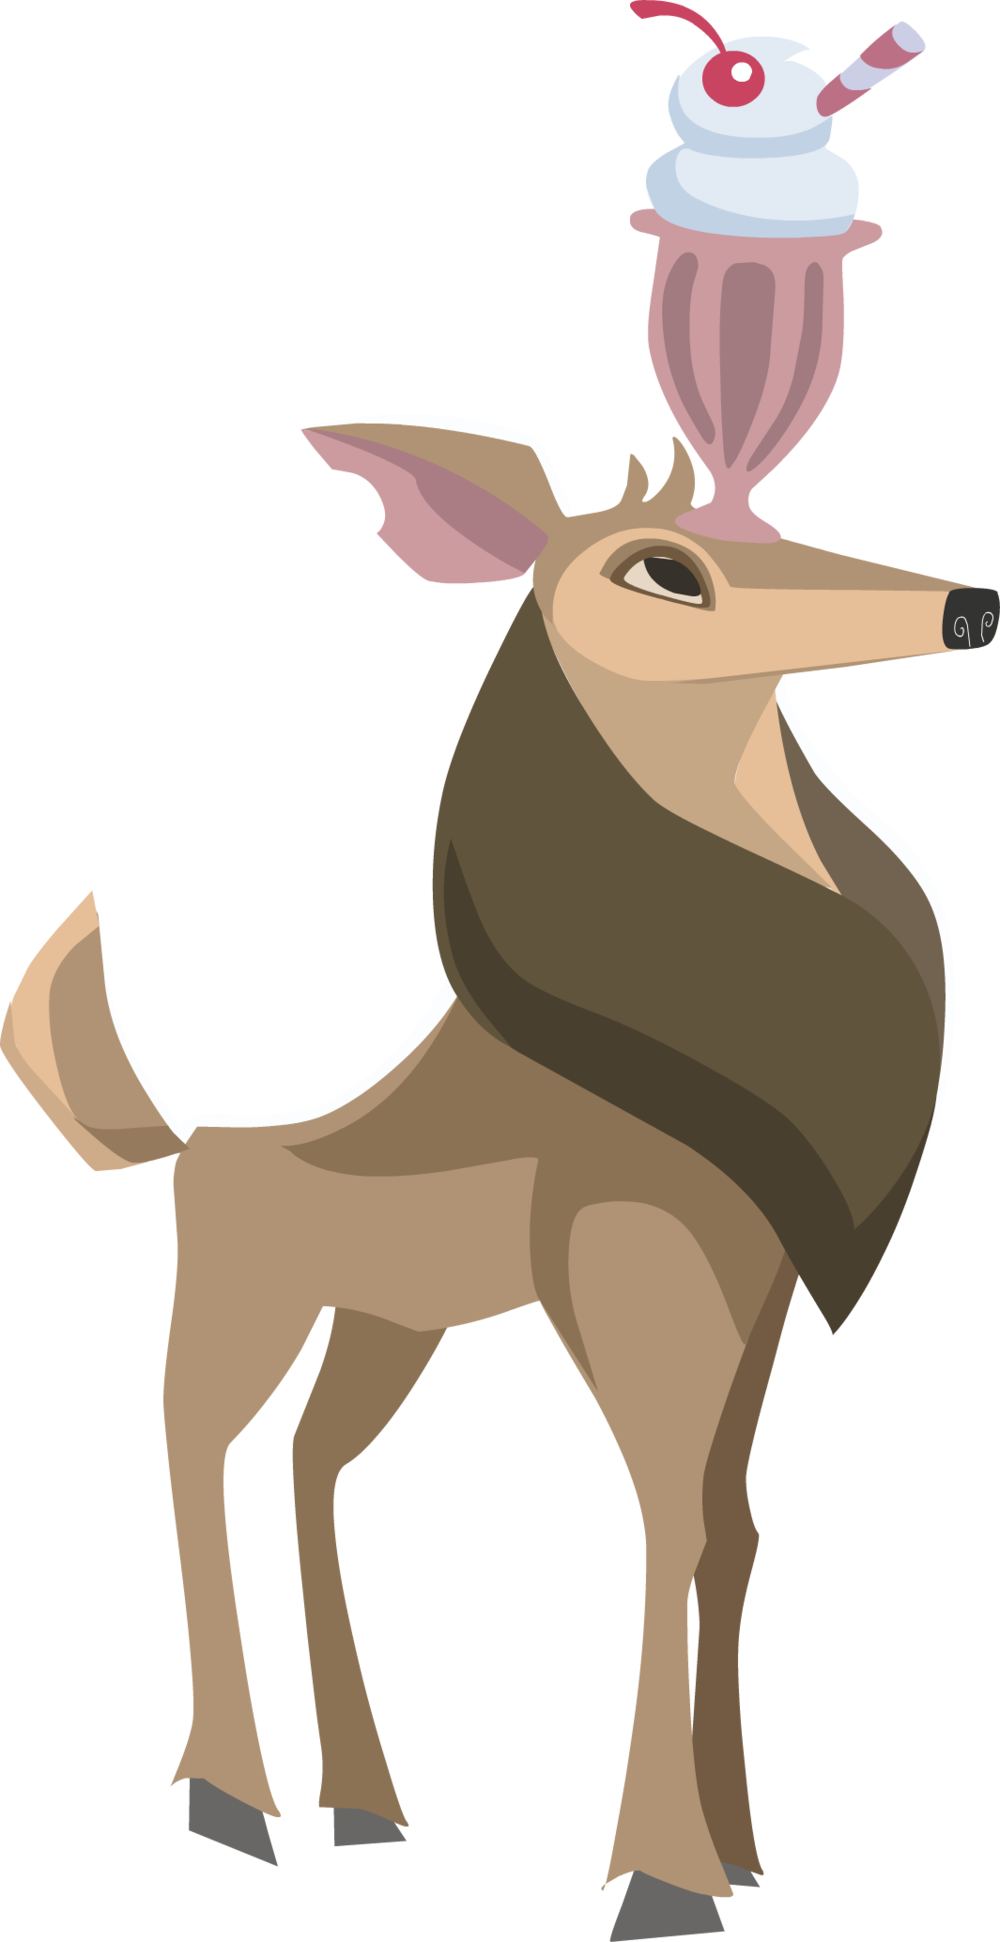 Image of: Png Deerpng Animal Jam Archives Deer Animal Jam Archives